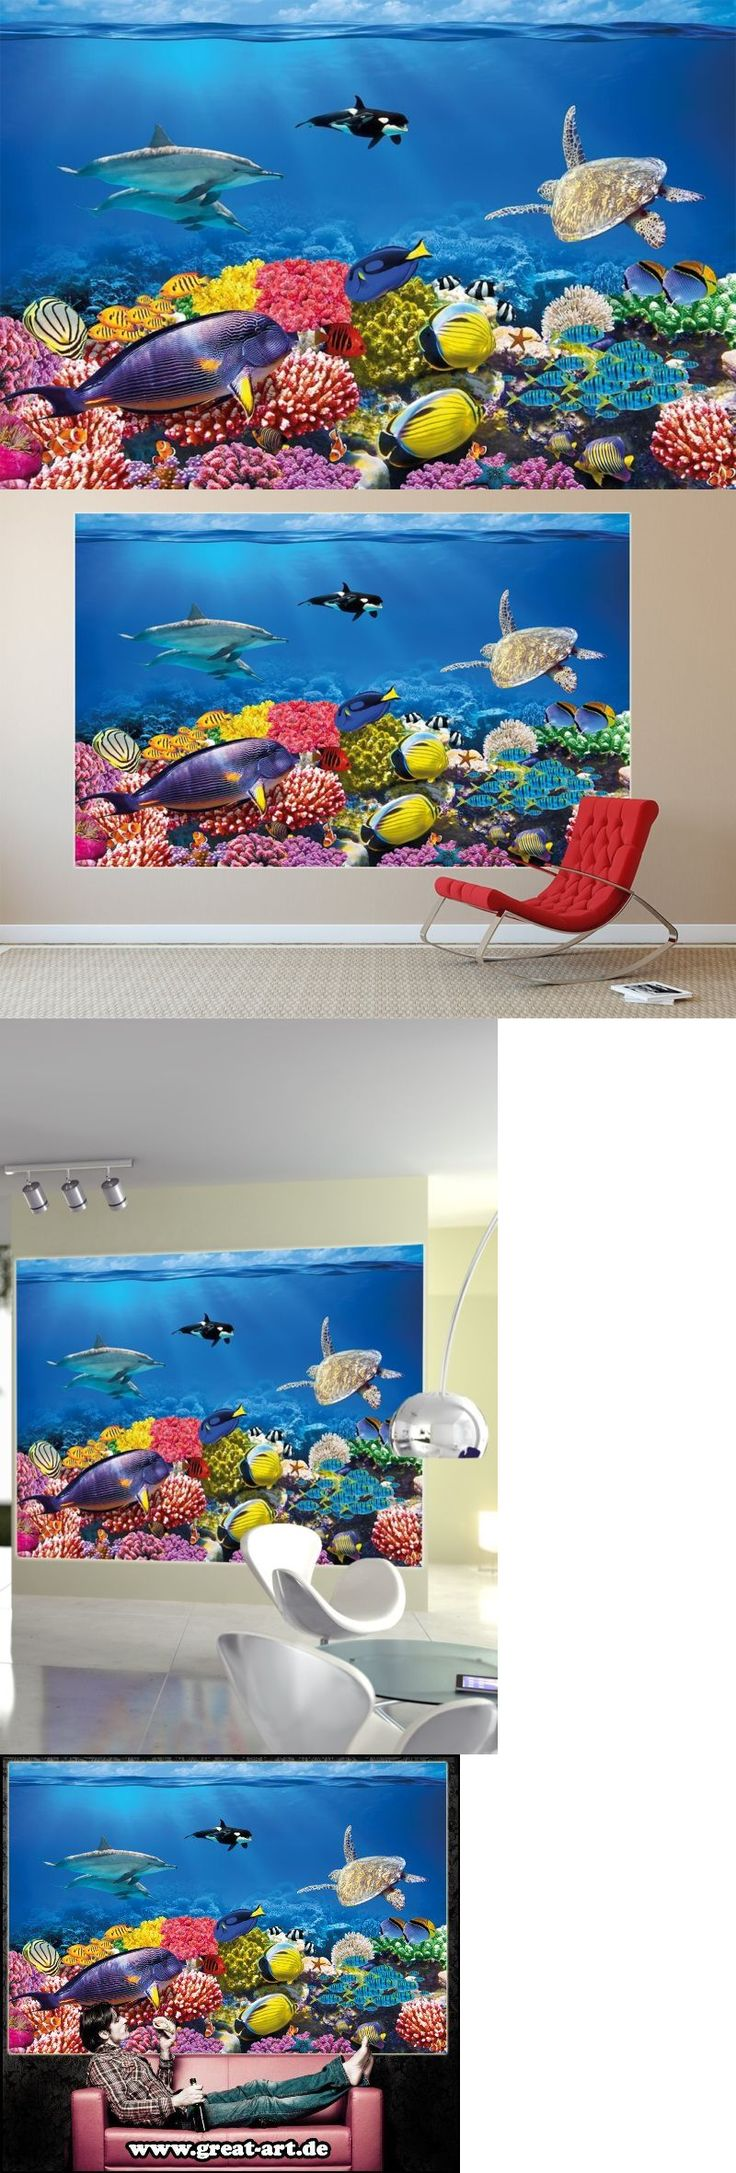 best 25 sea murals ideas on pinterest wall murals bedroom tree wallpaper murals 79626 undersea coral reef photo wall paper aquarium fish sea mural